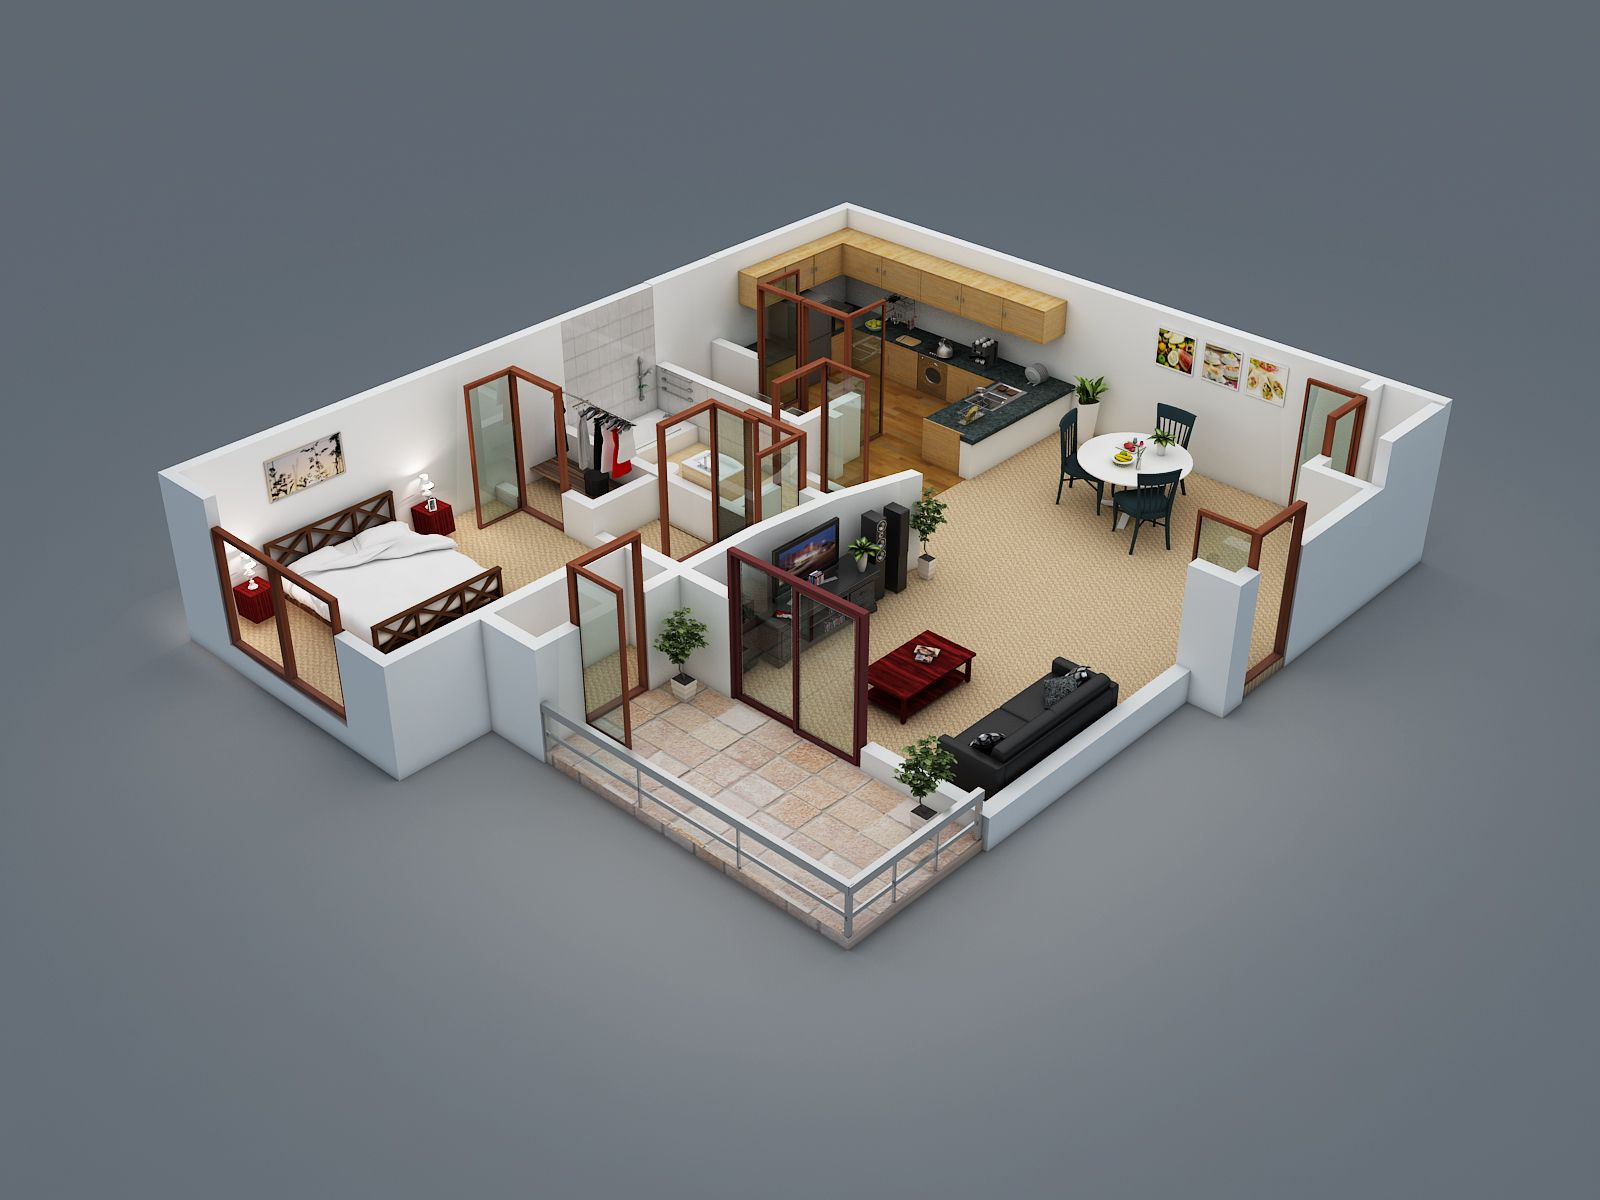 3d floor plan services architectural 3d floor plan rendering - 3d Floor Planning